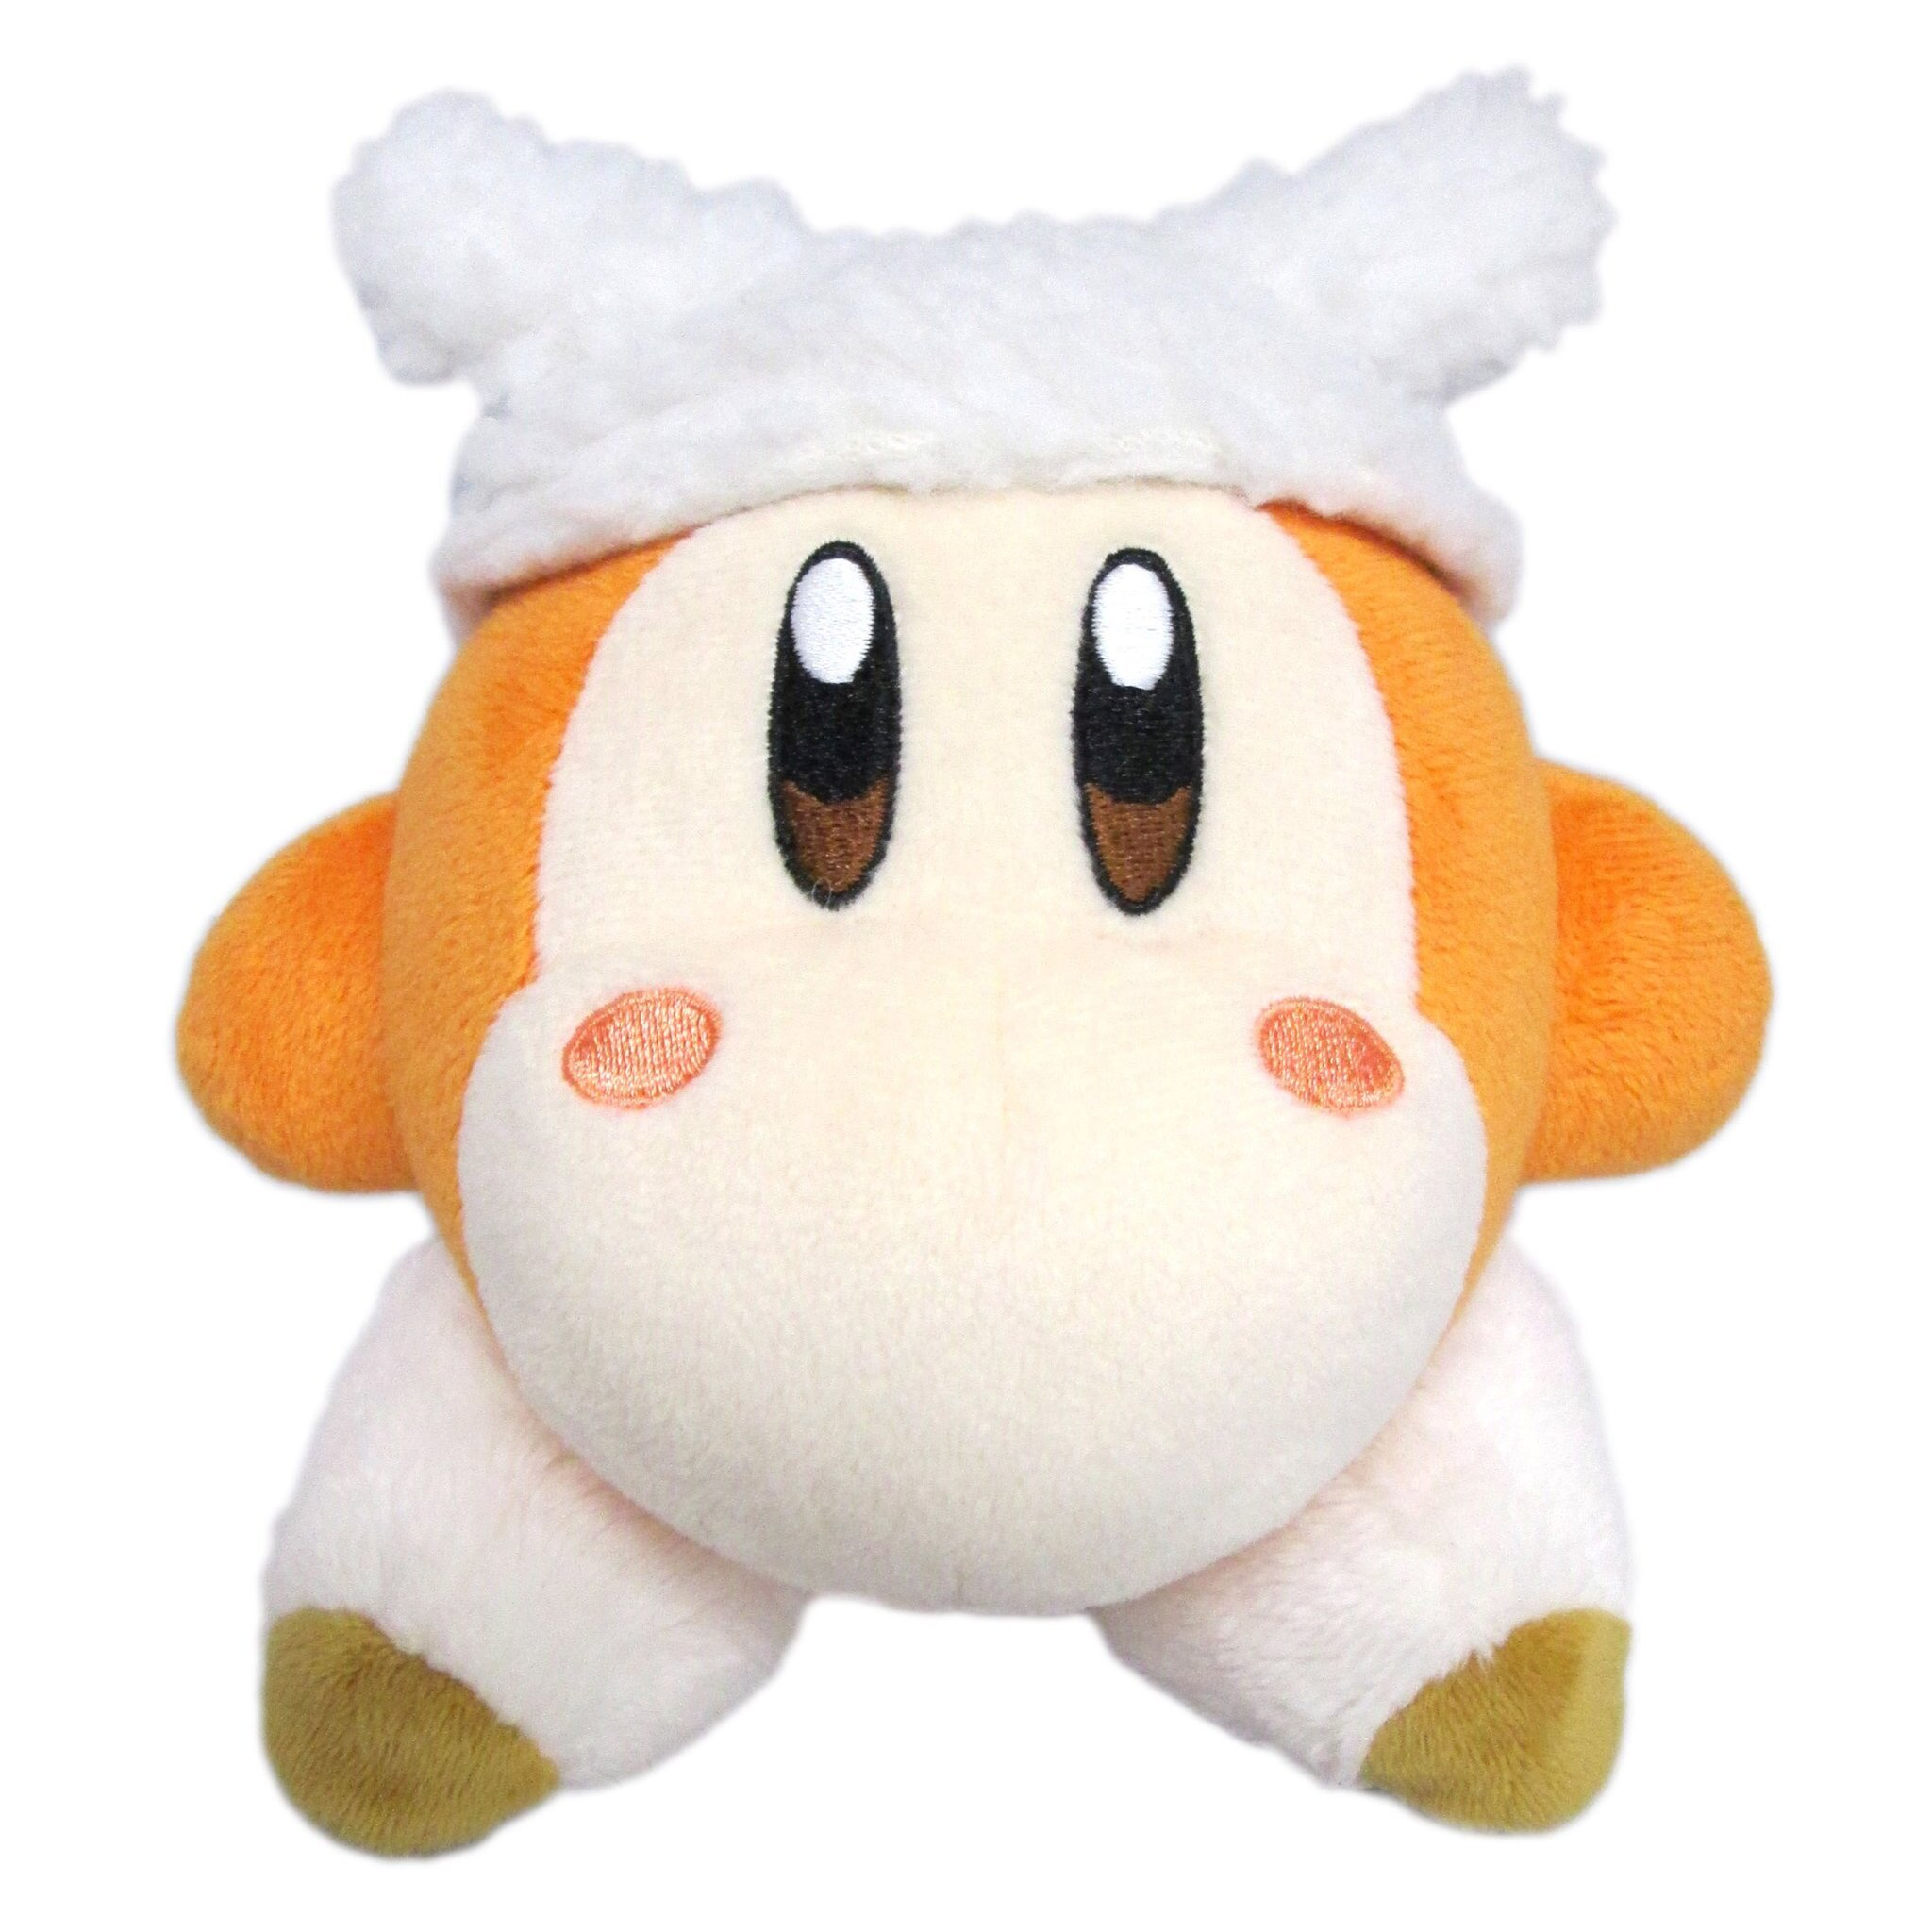 sheep-waddle-dee-plush-all-star-collection-plush (1)